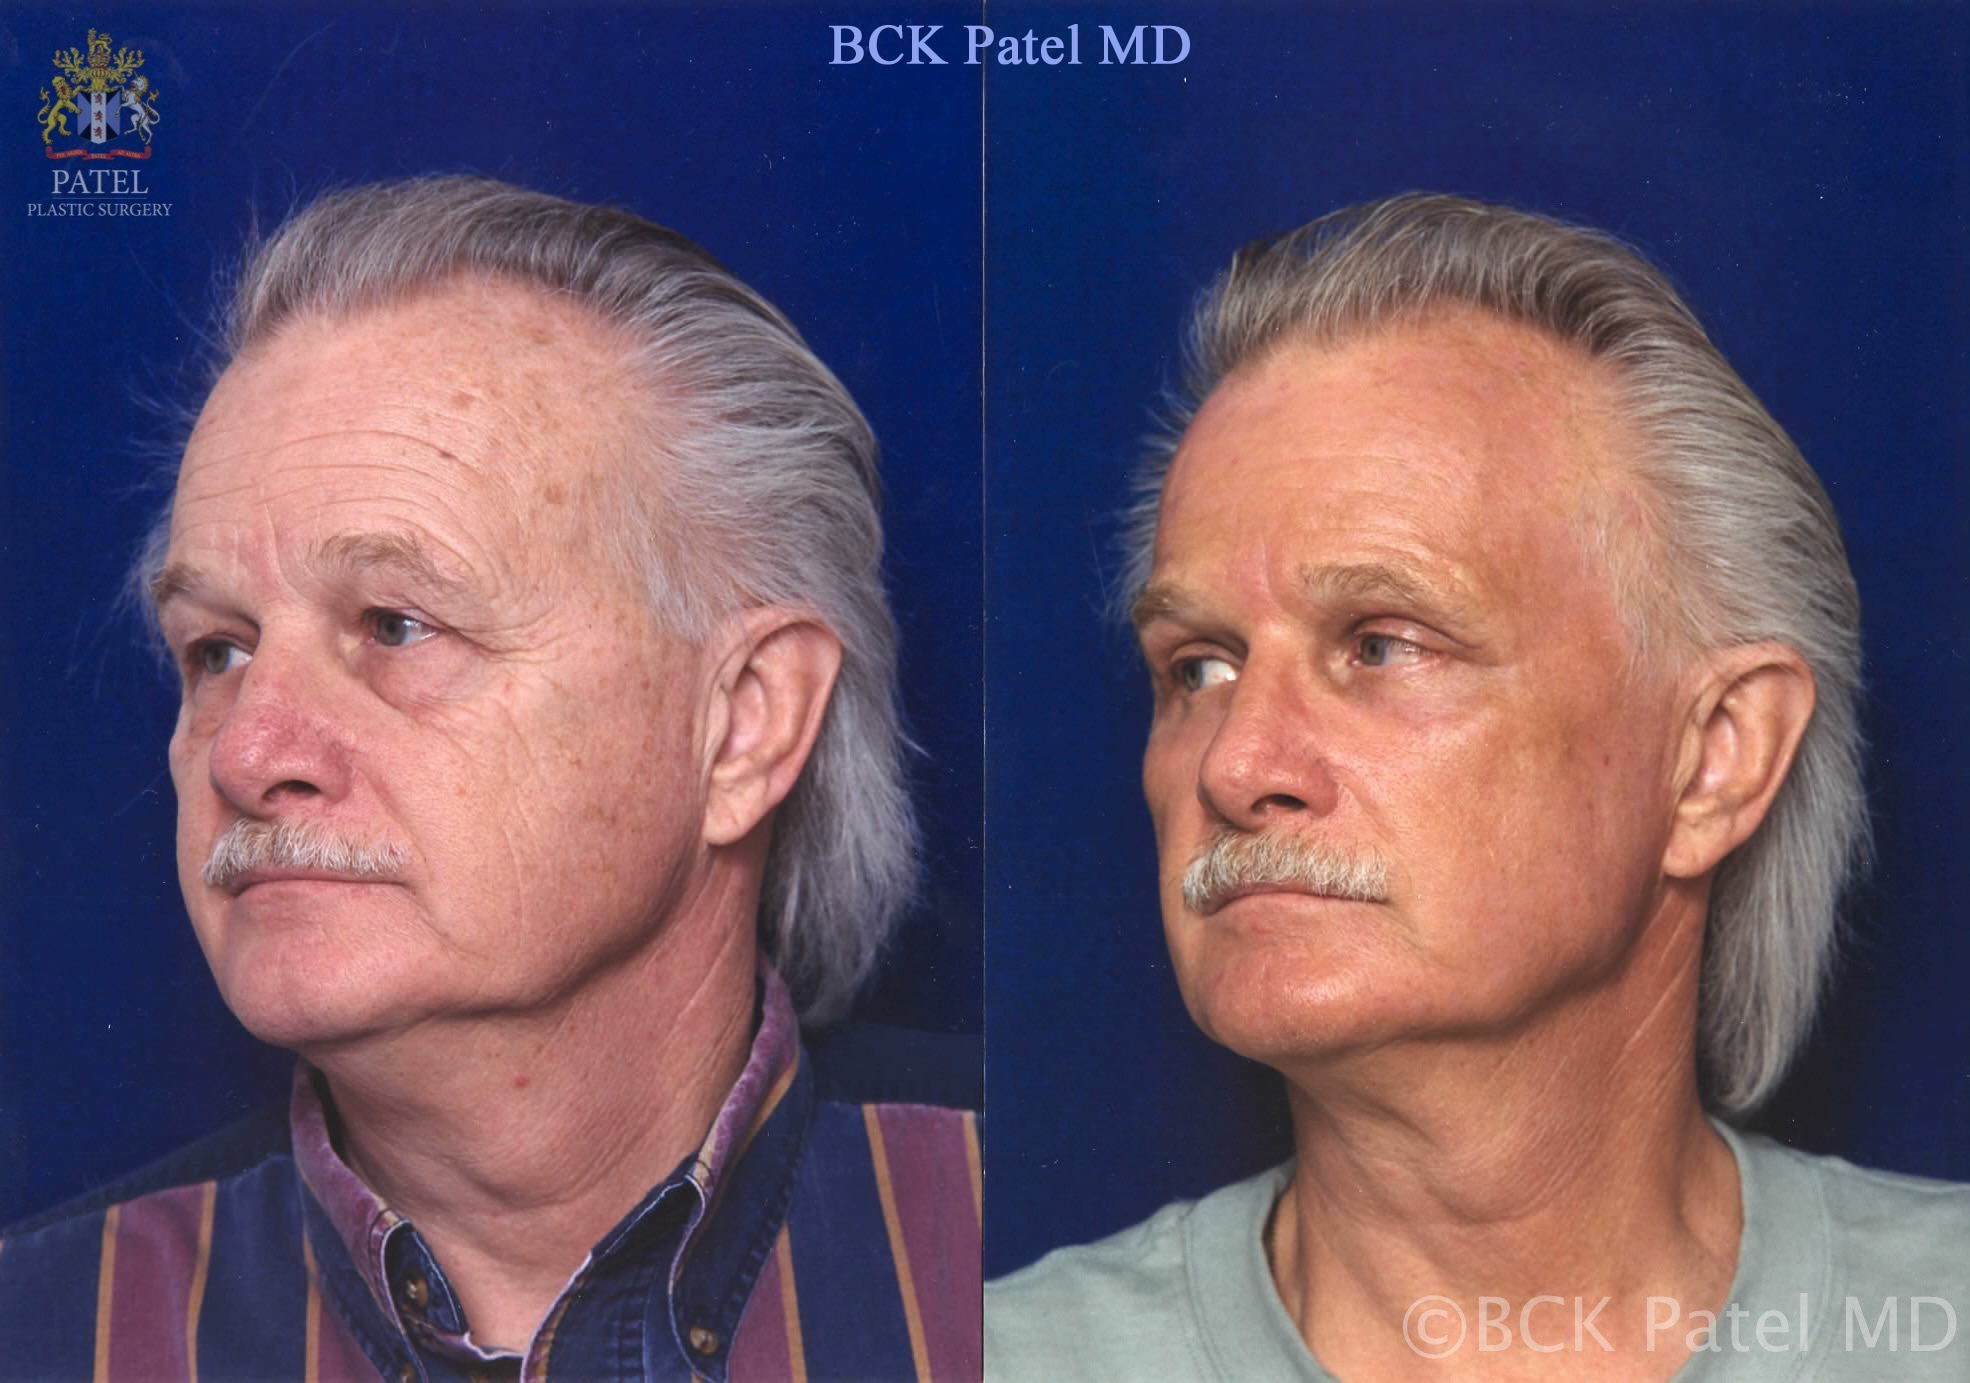 Results of the fractionated CO2 laser to the full face in a man by Dr. BCK patel MD, FRCS, Salt Lake City, St George, London, England